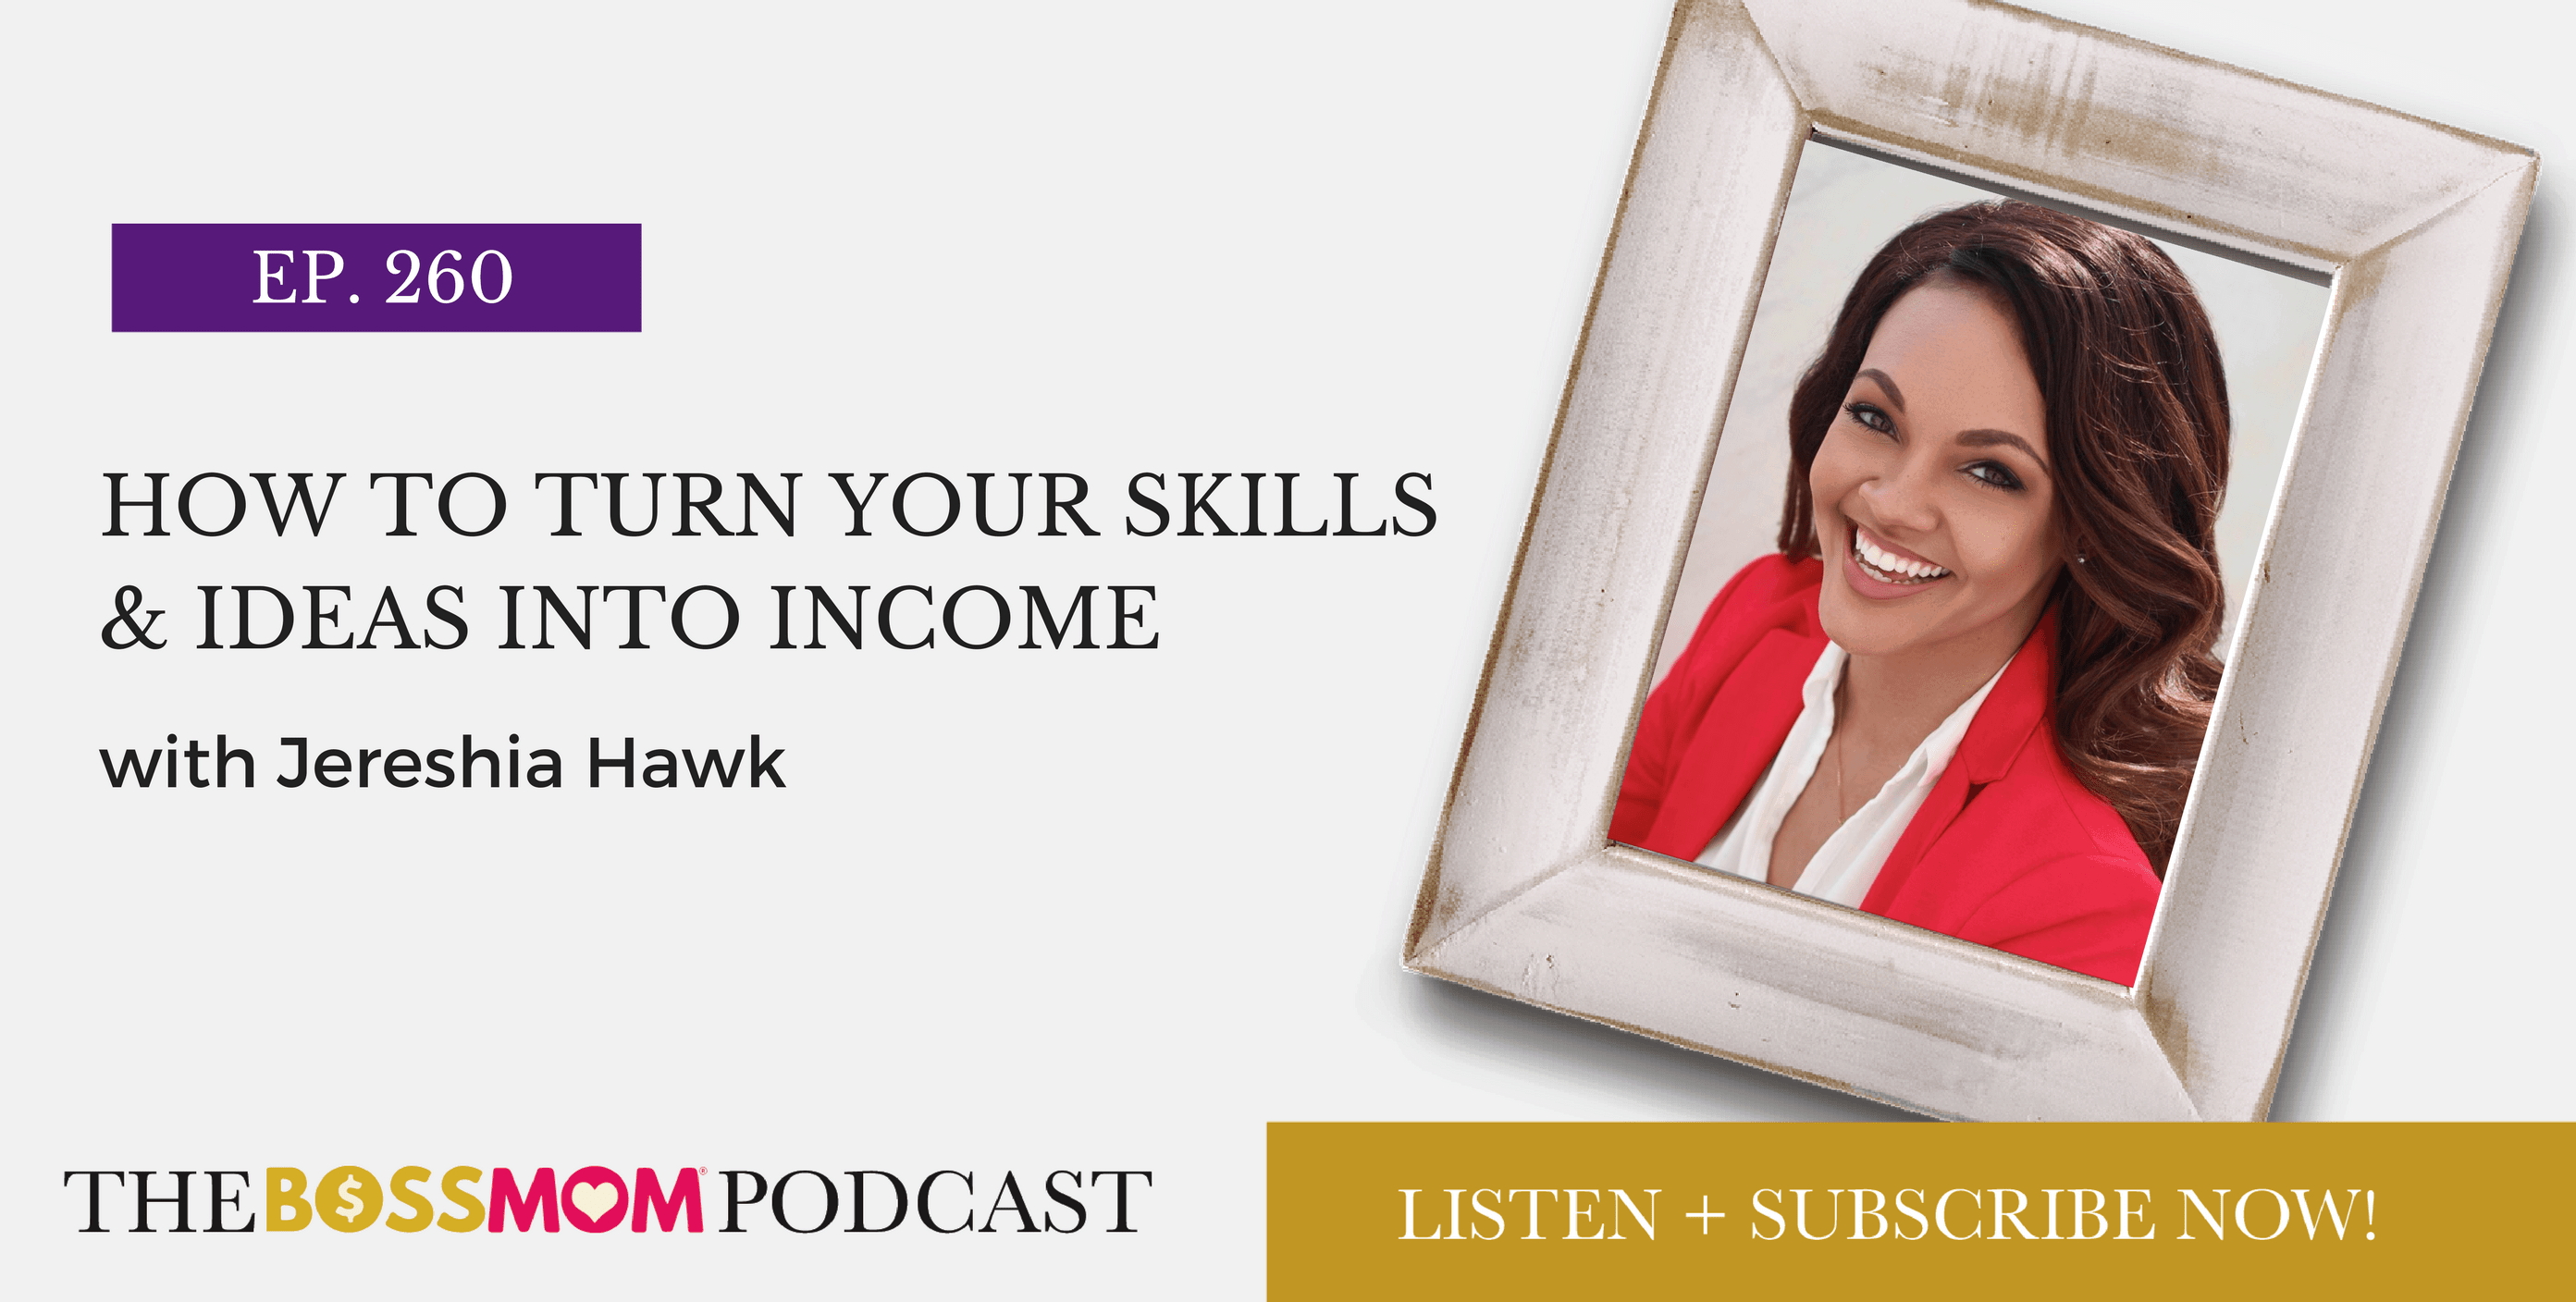 Episode 260: How to Turn Your Skills & Ideas Into Income with Jereshia Hawk